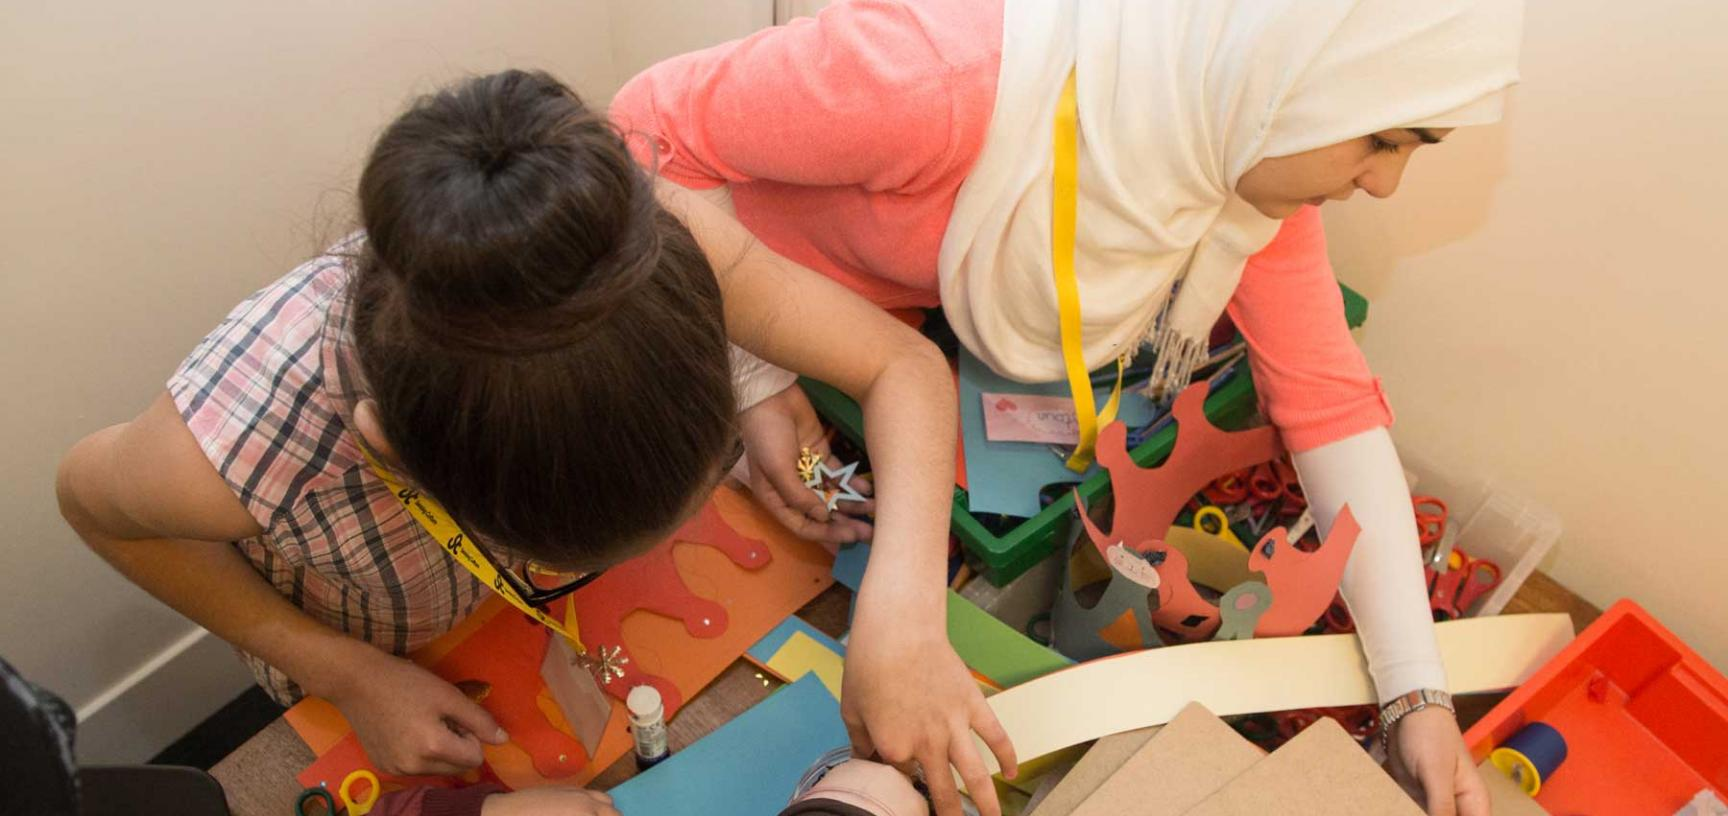 two girls making crafts at family day